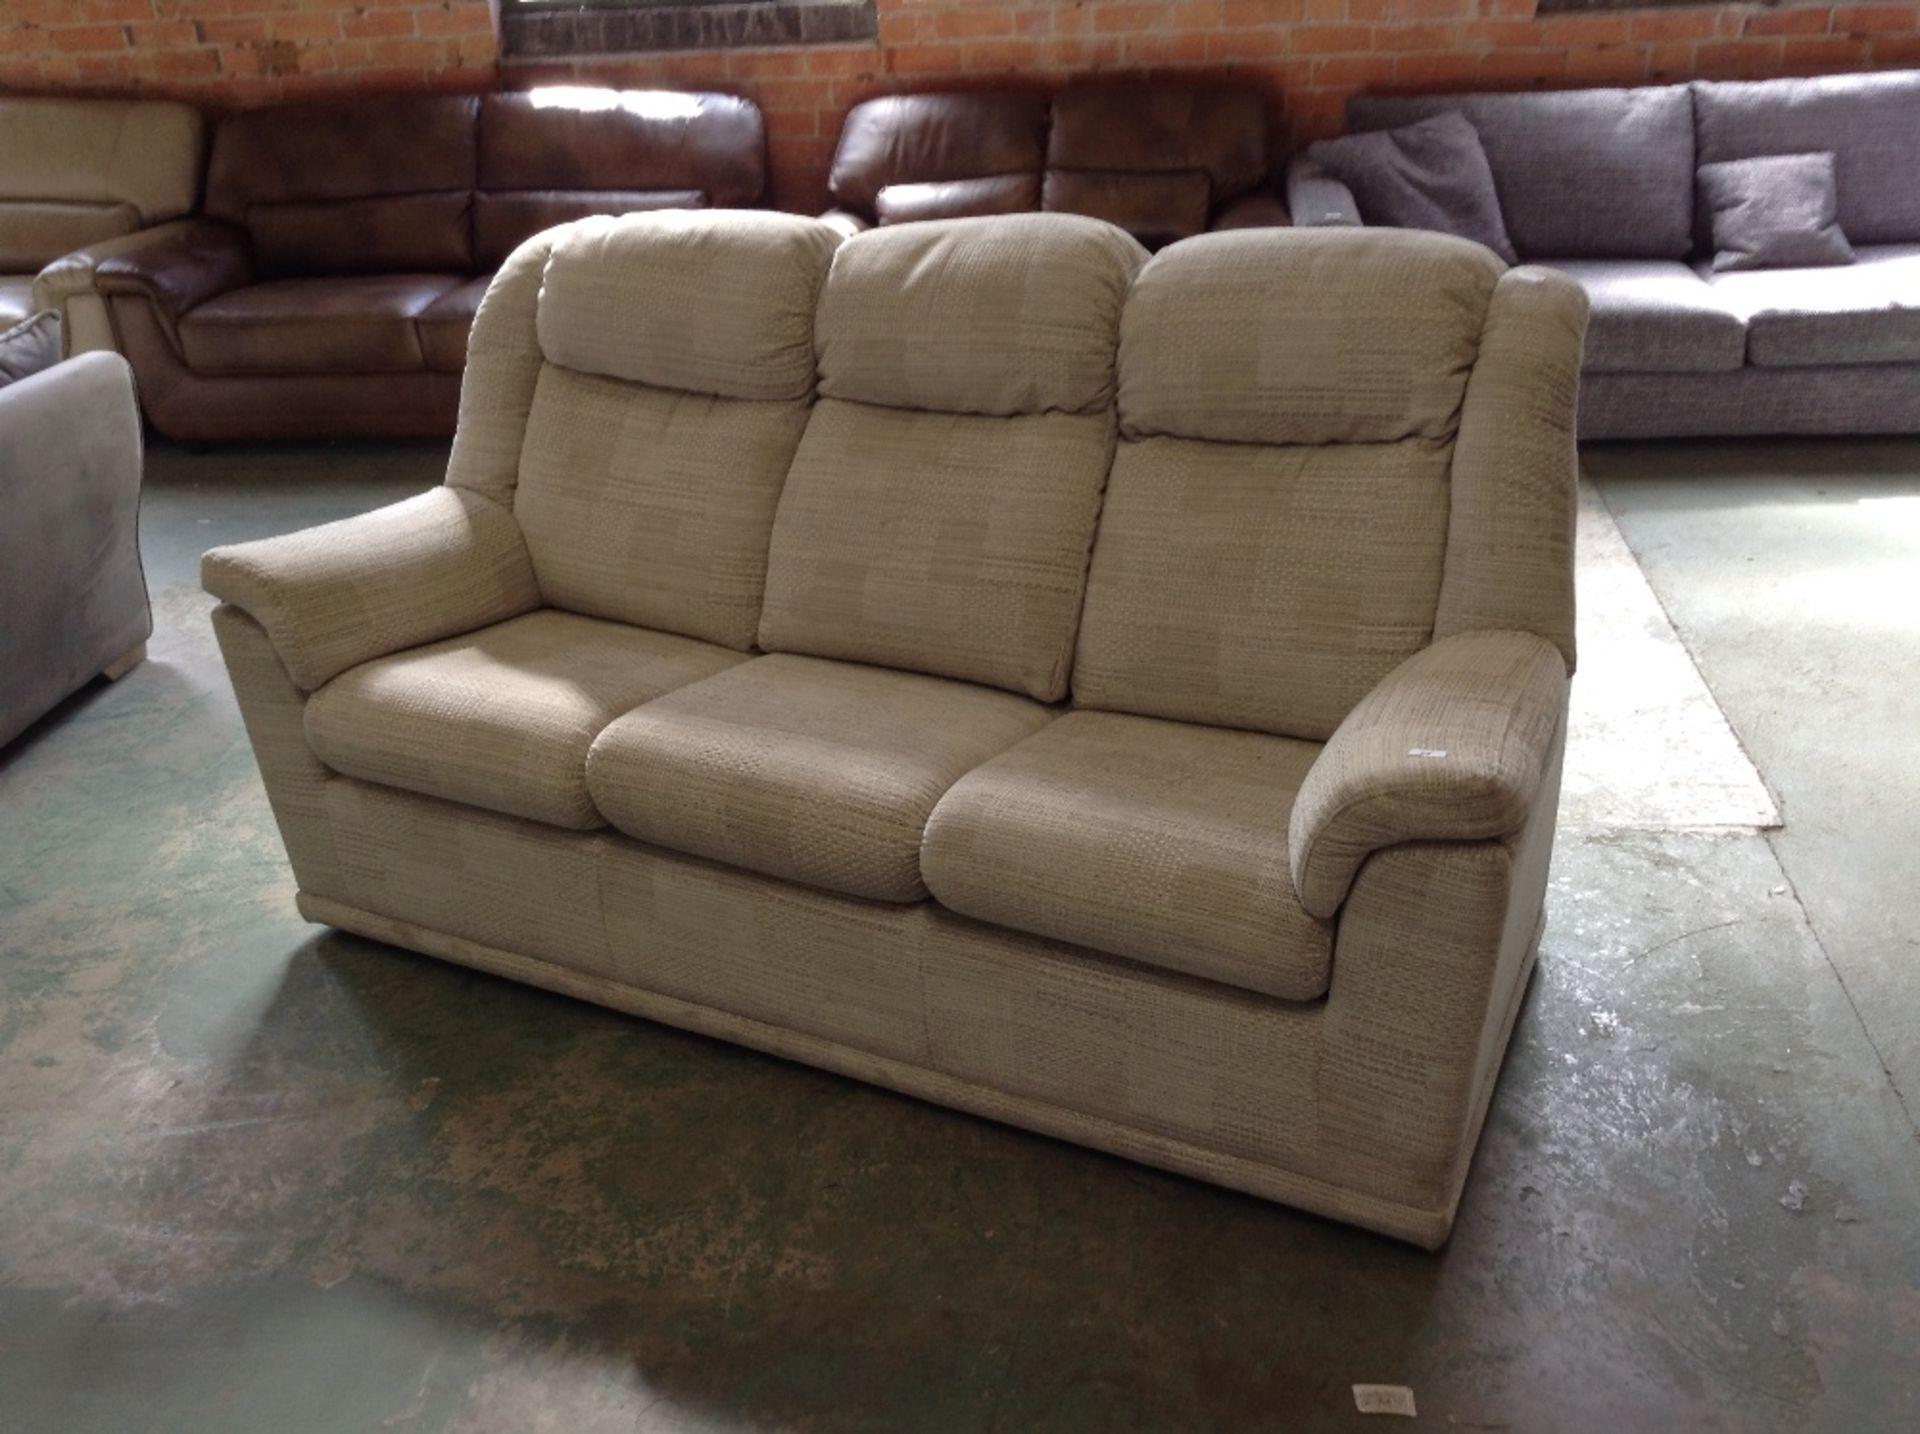 Lot 24 - GREY PATTERNED HIGH BACK 3 SEATER SOFA (SO123075-